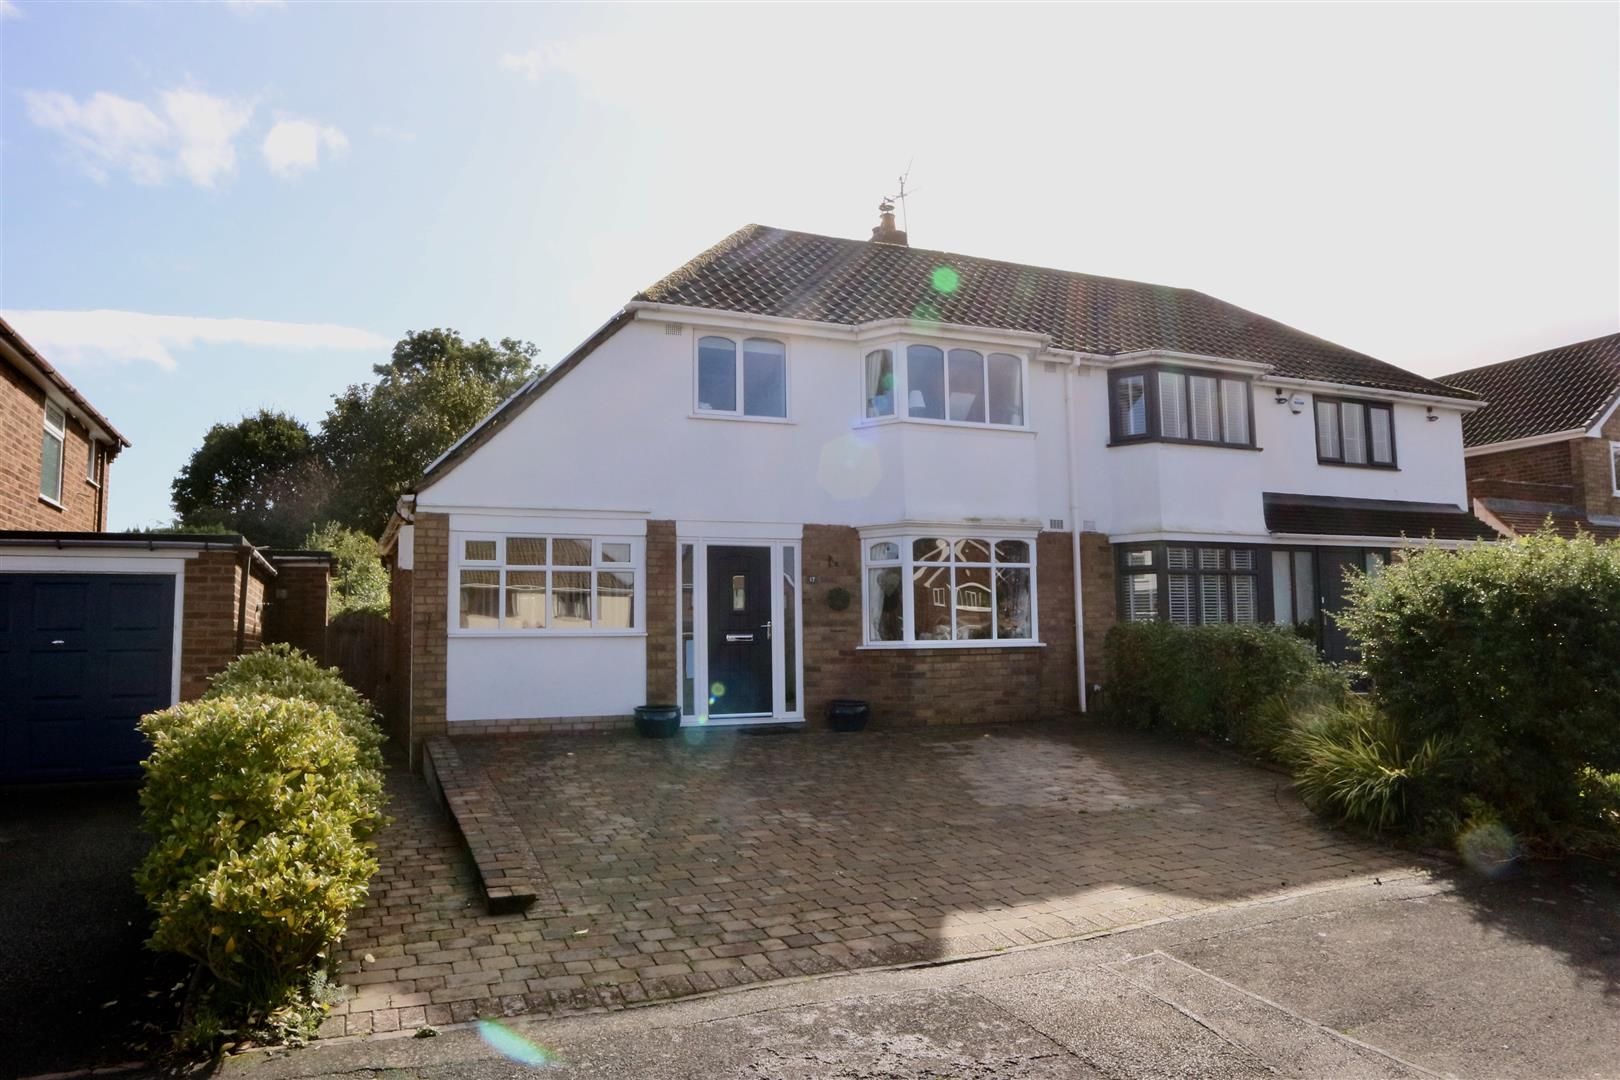 3 bed semi-detached for sale in Pedmore - Property Image 1